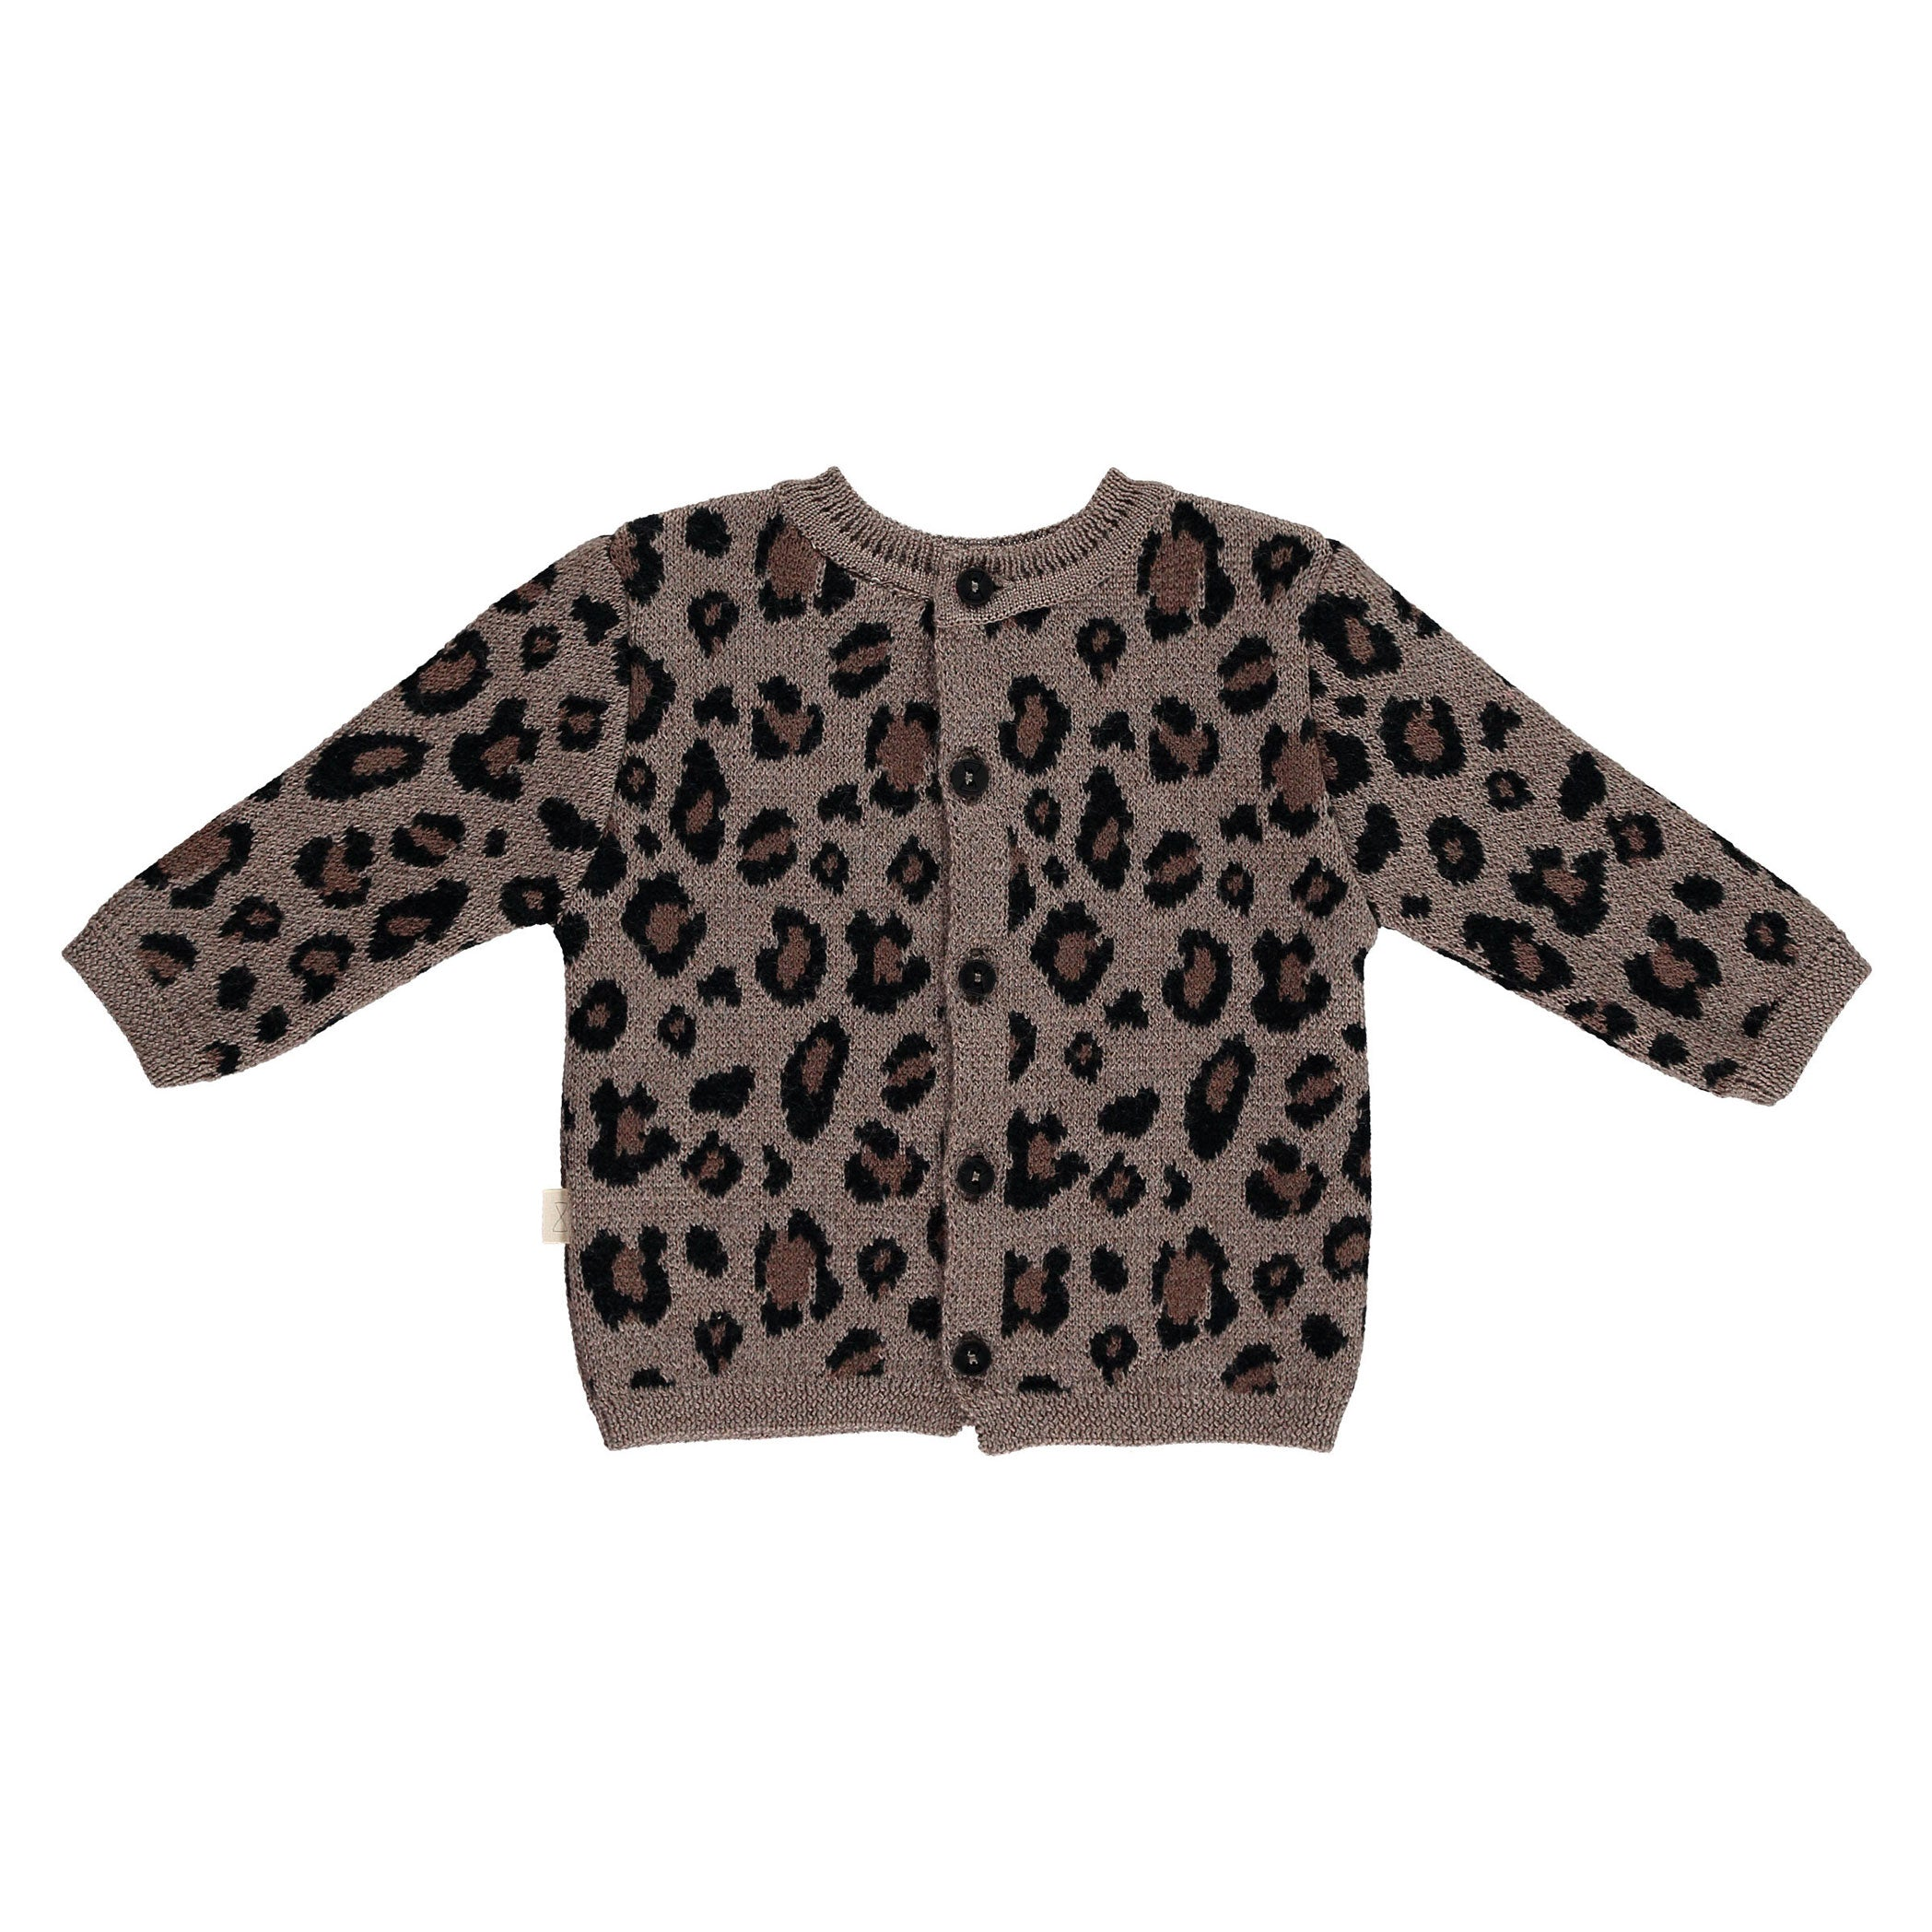 Mini Sibling Leopard Knit Sweater-Cardigan